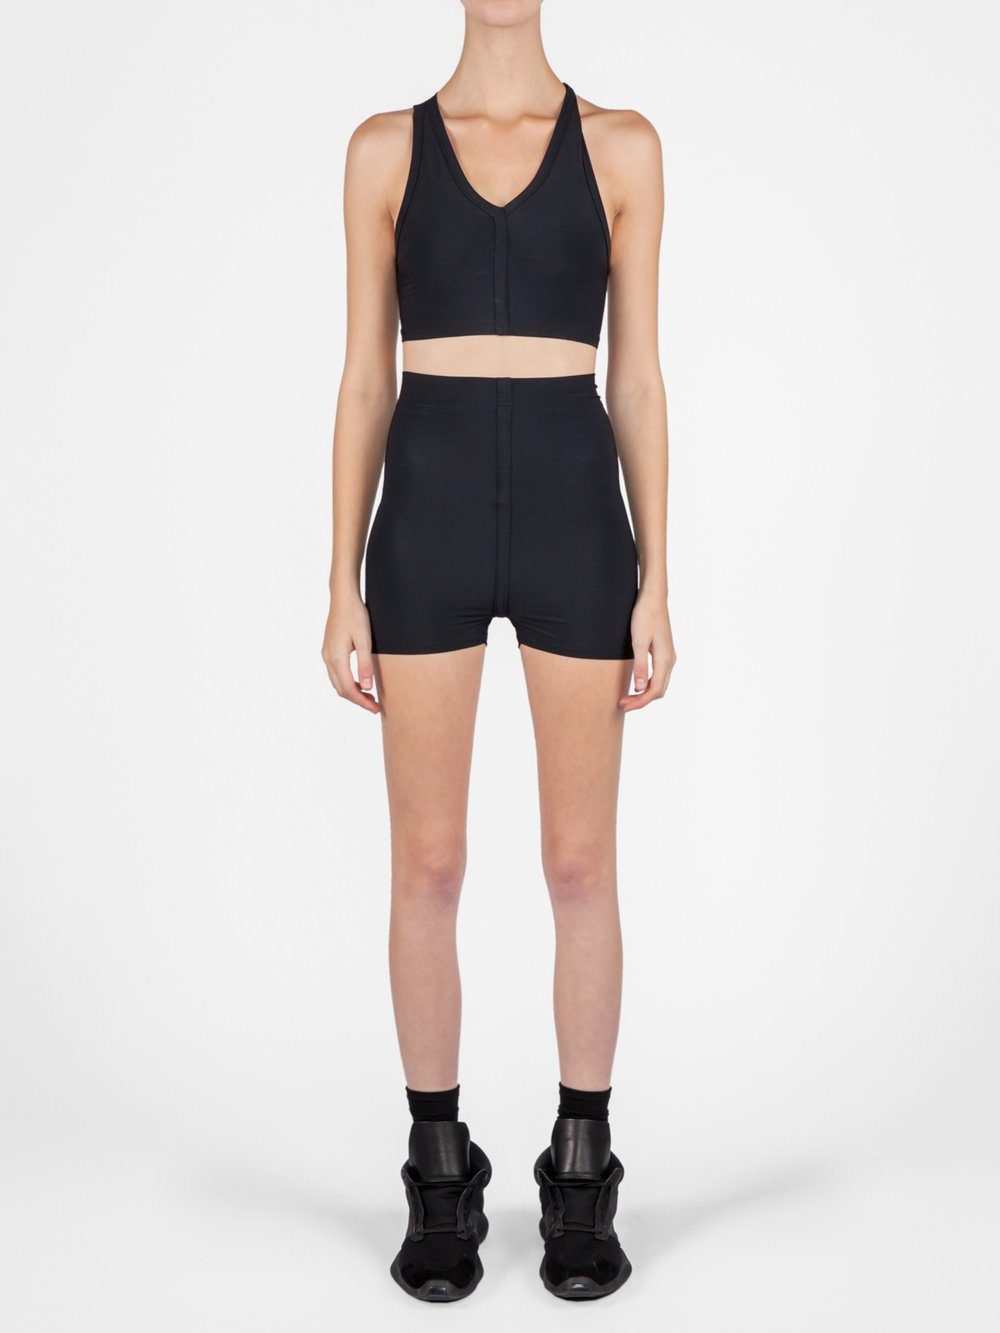 RICK OWENS - V-NECK CROPPED SWIM TOP